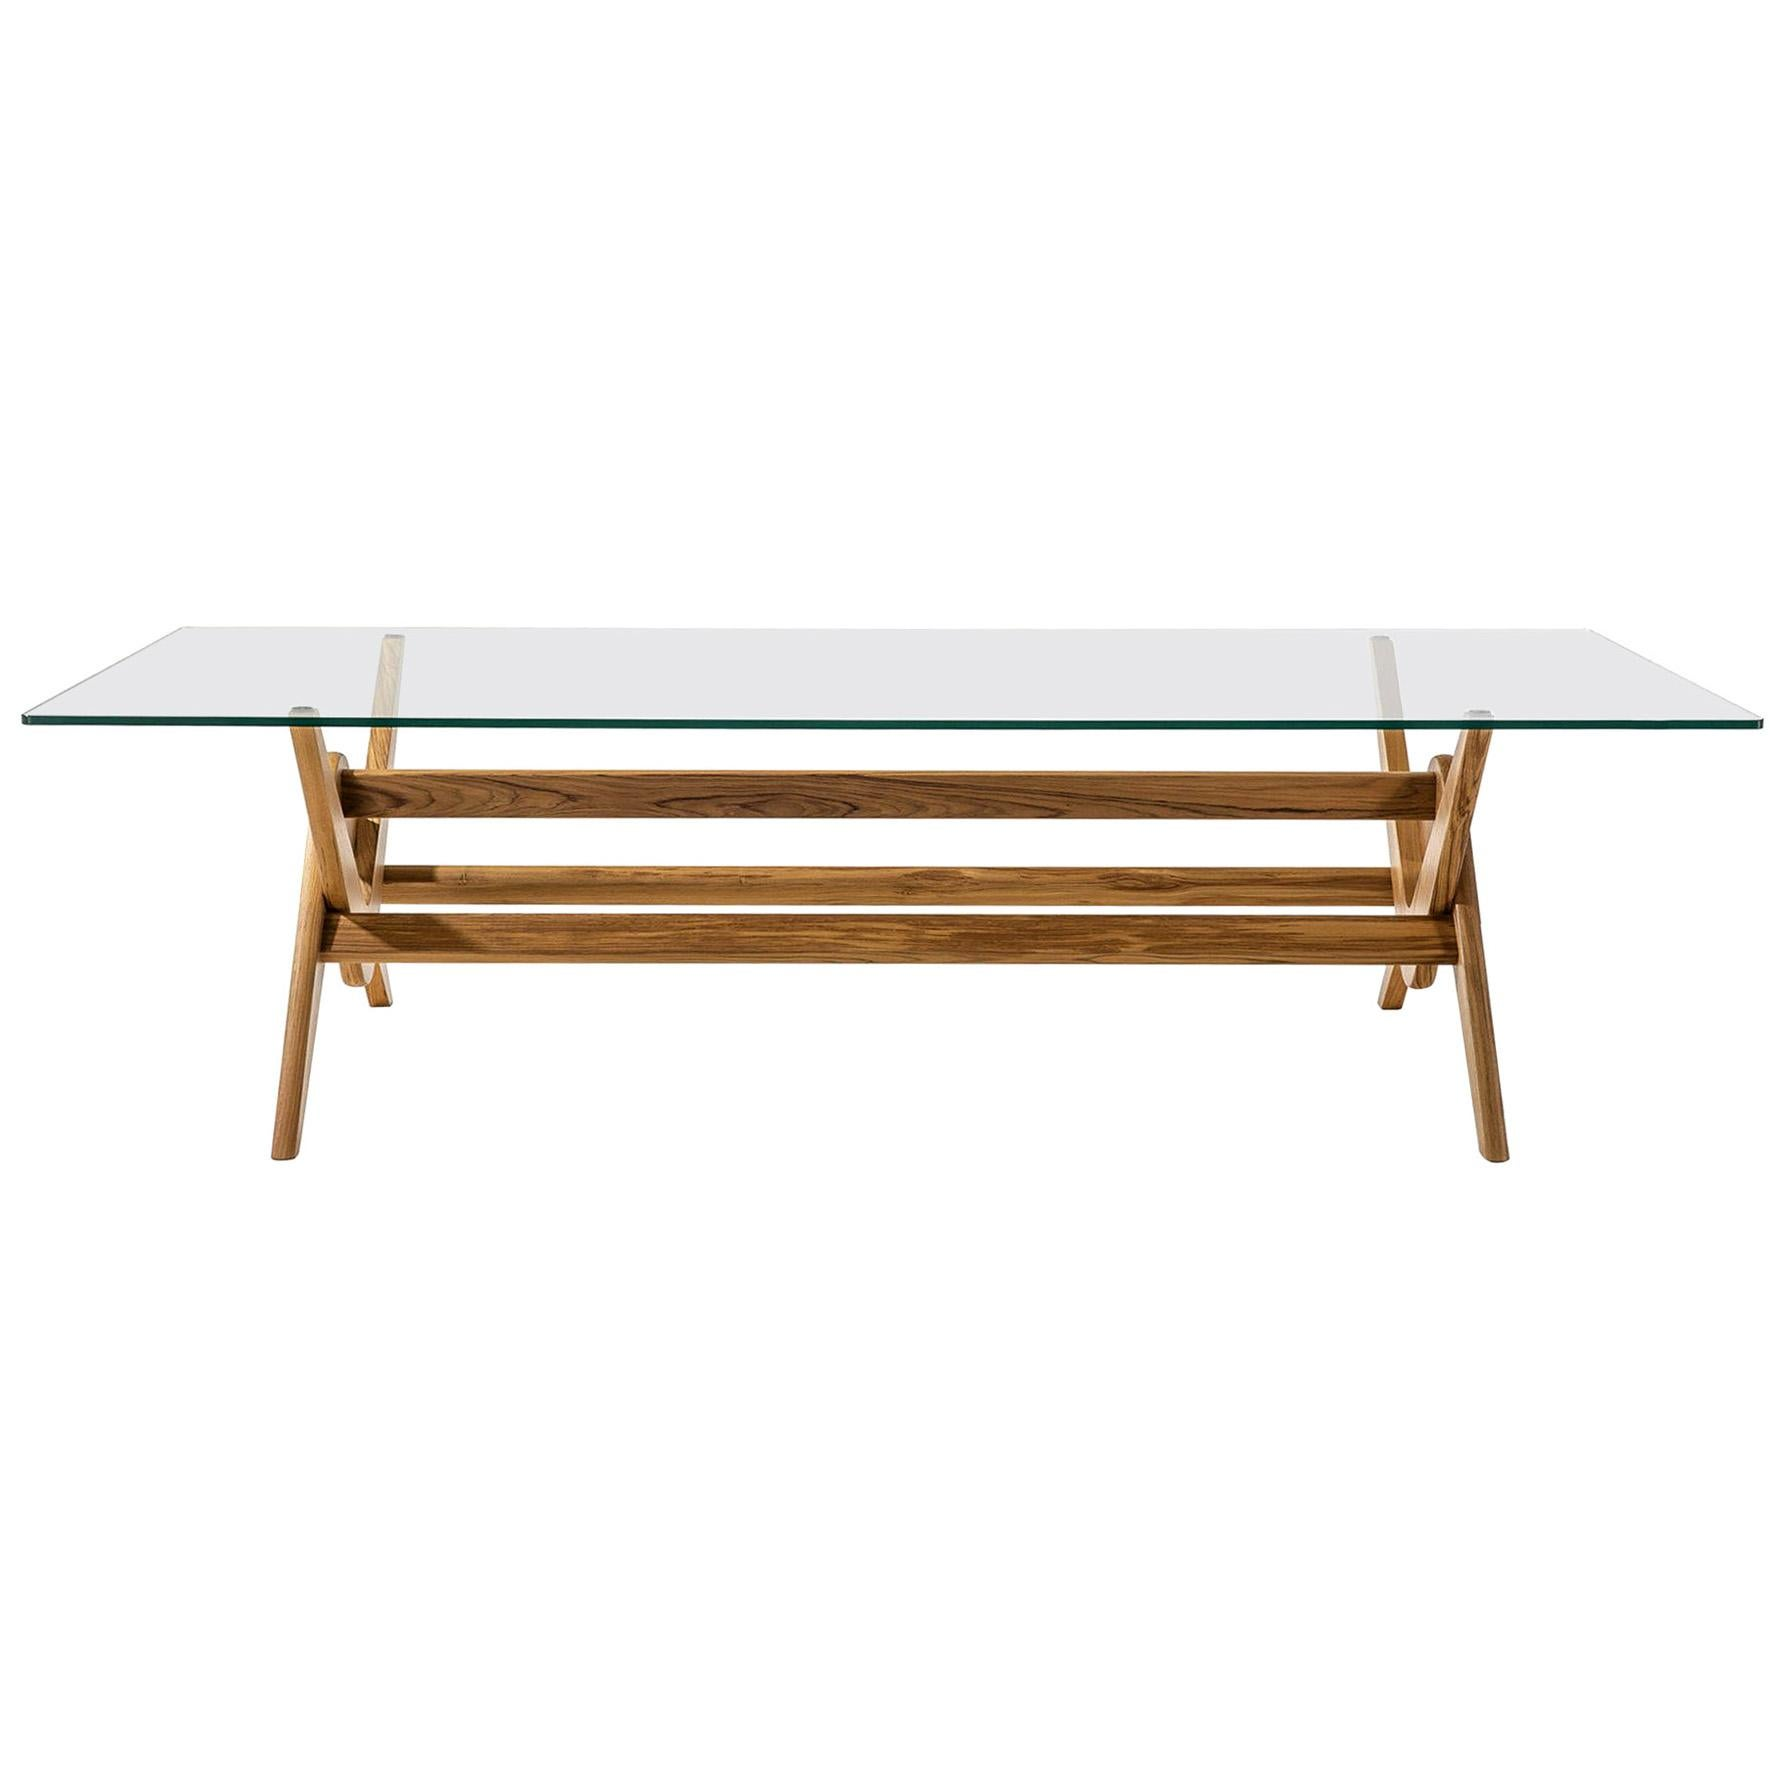 Pierre Jeanneret 056 Capitol Complex Table Wood and Glass by Cassina